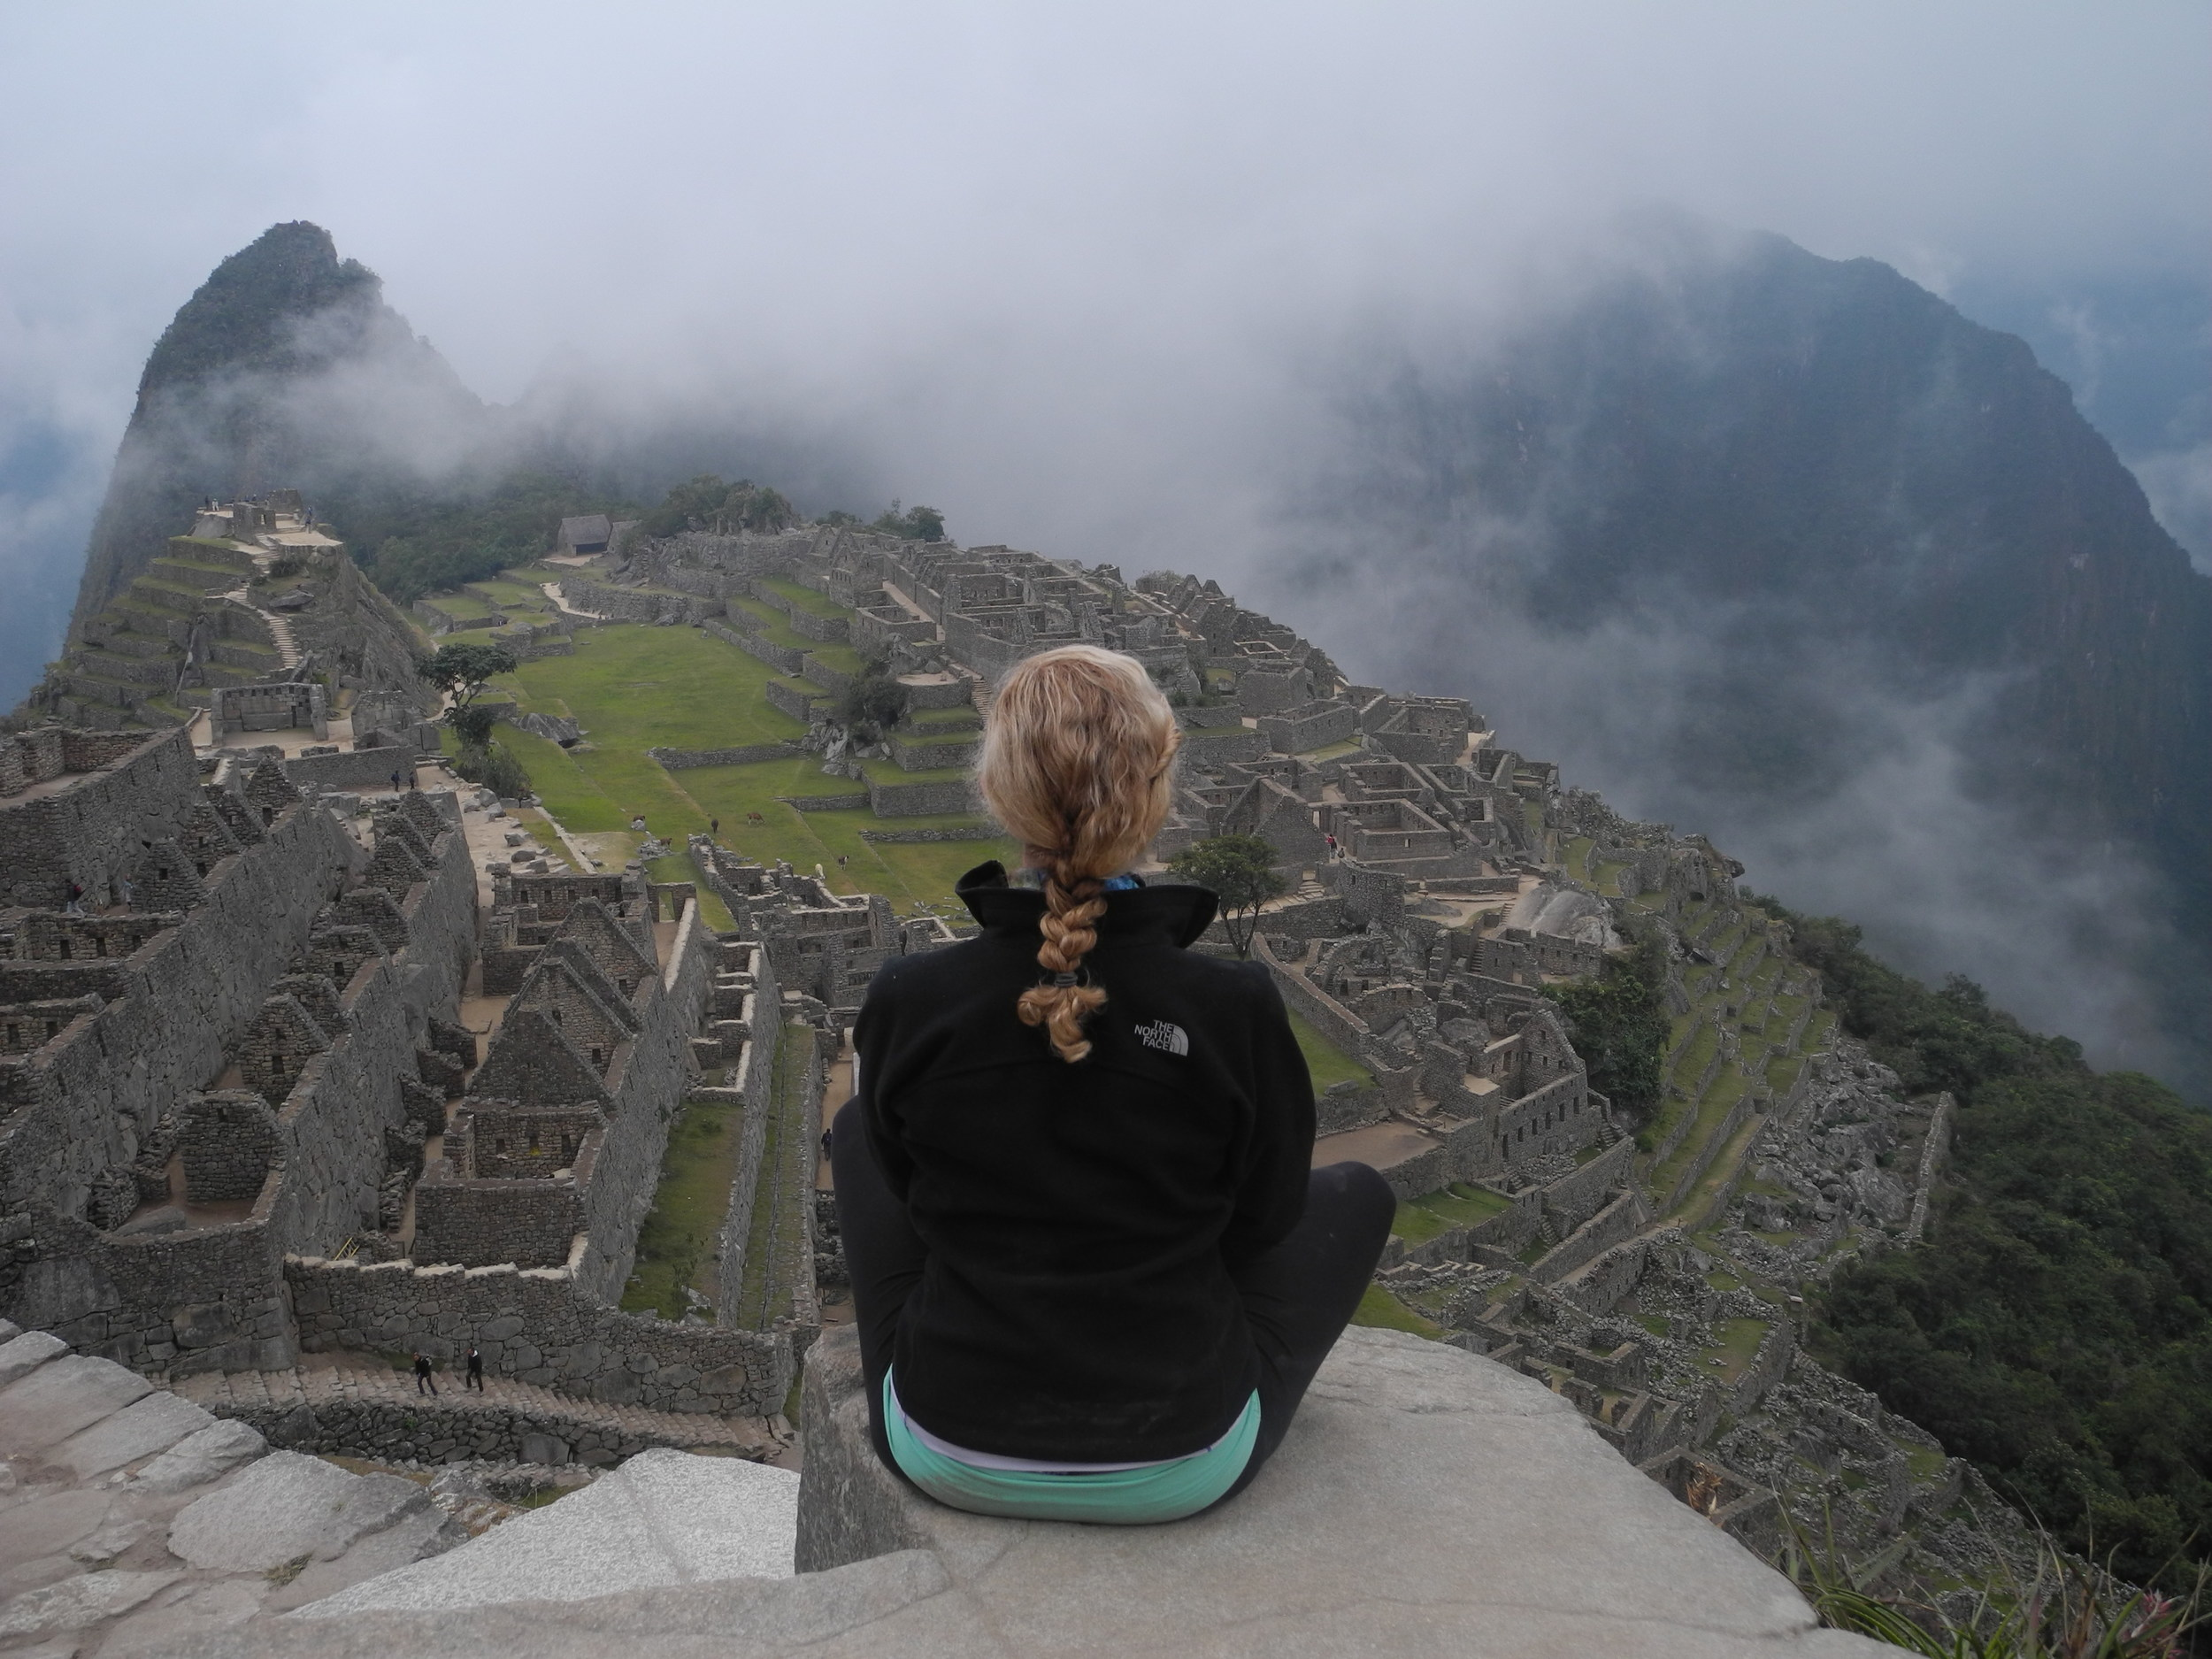 A day after conquering the parasite, I was among the ruins of Machu Picchu